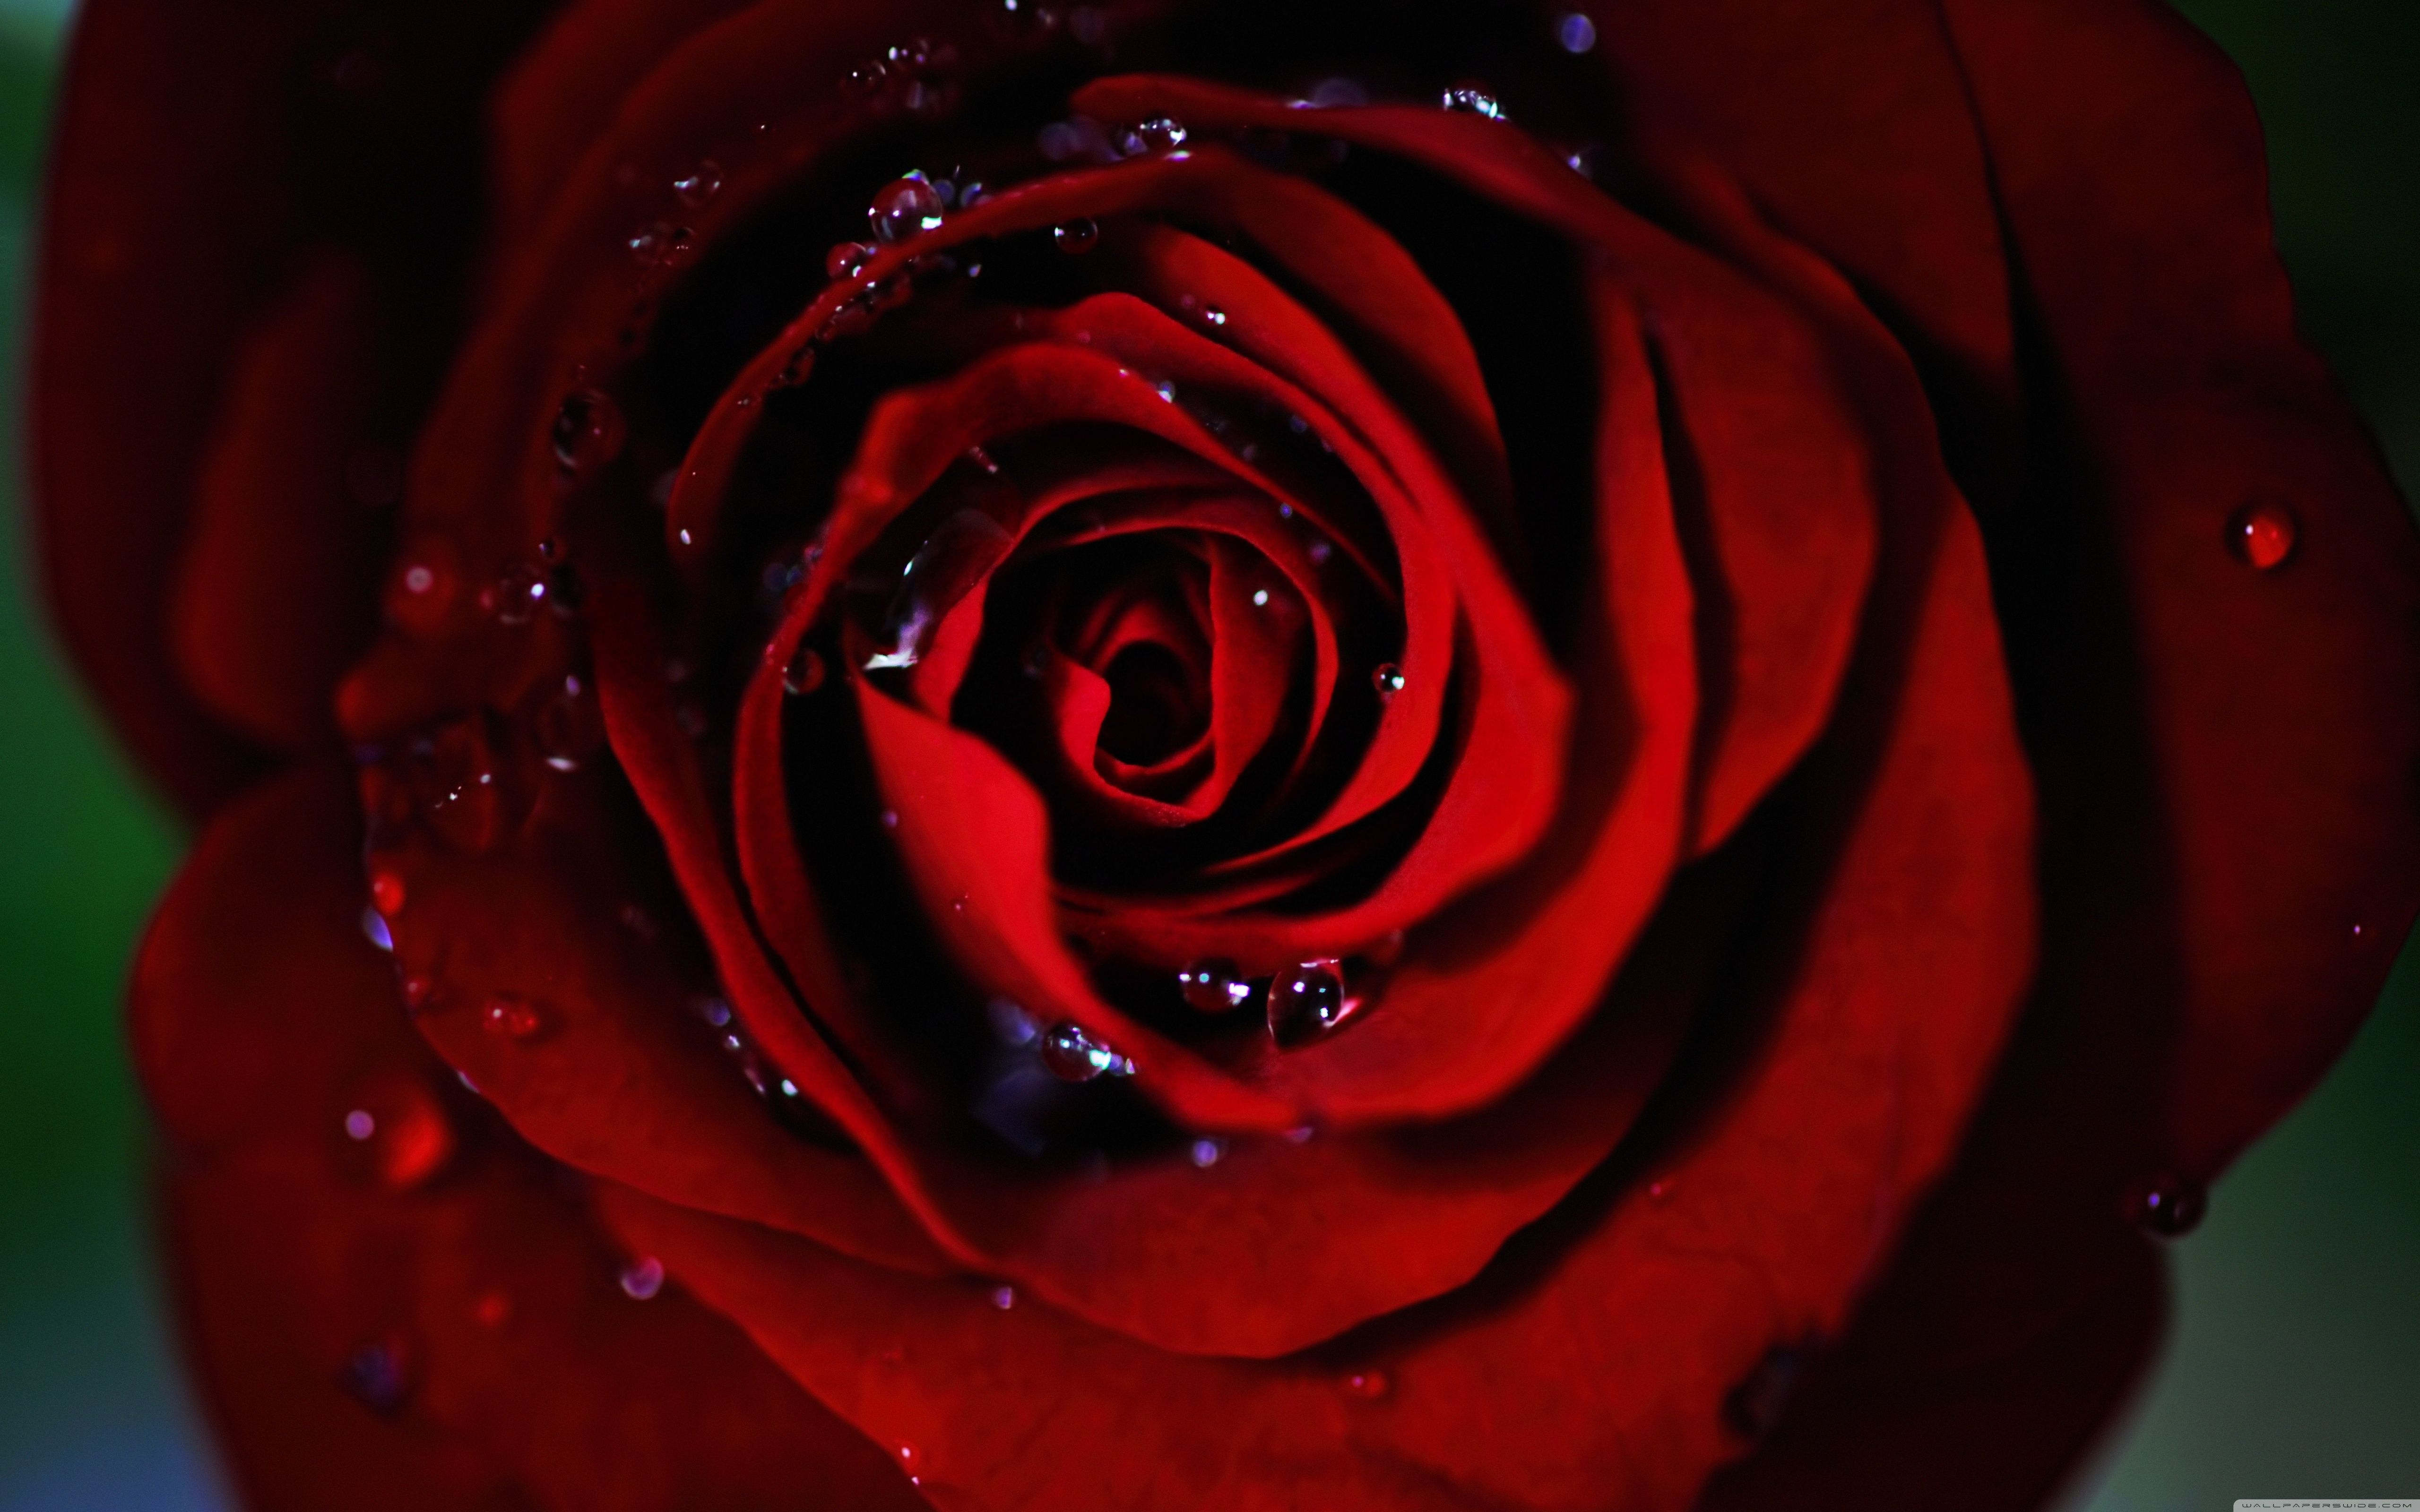 All Red Wallpaper Group 50 Hd Wallpapers Red Roses Wallpaper Red Wallpaper Dark Red Wallpaper